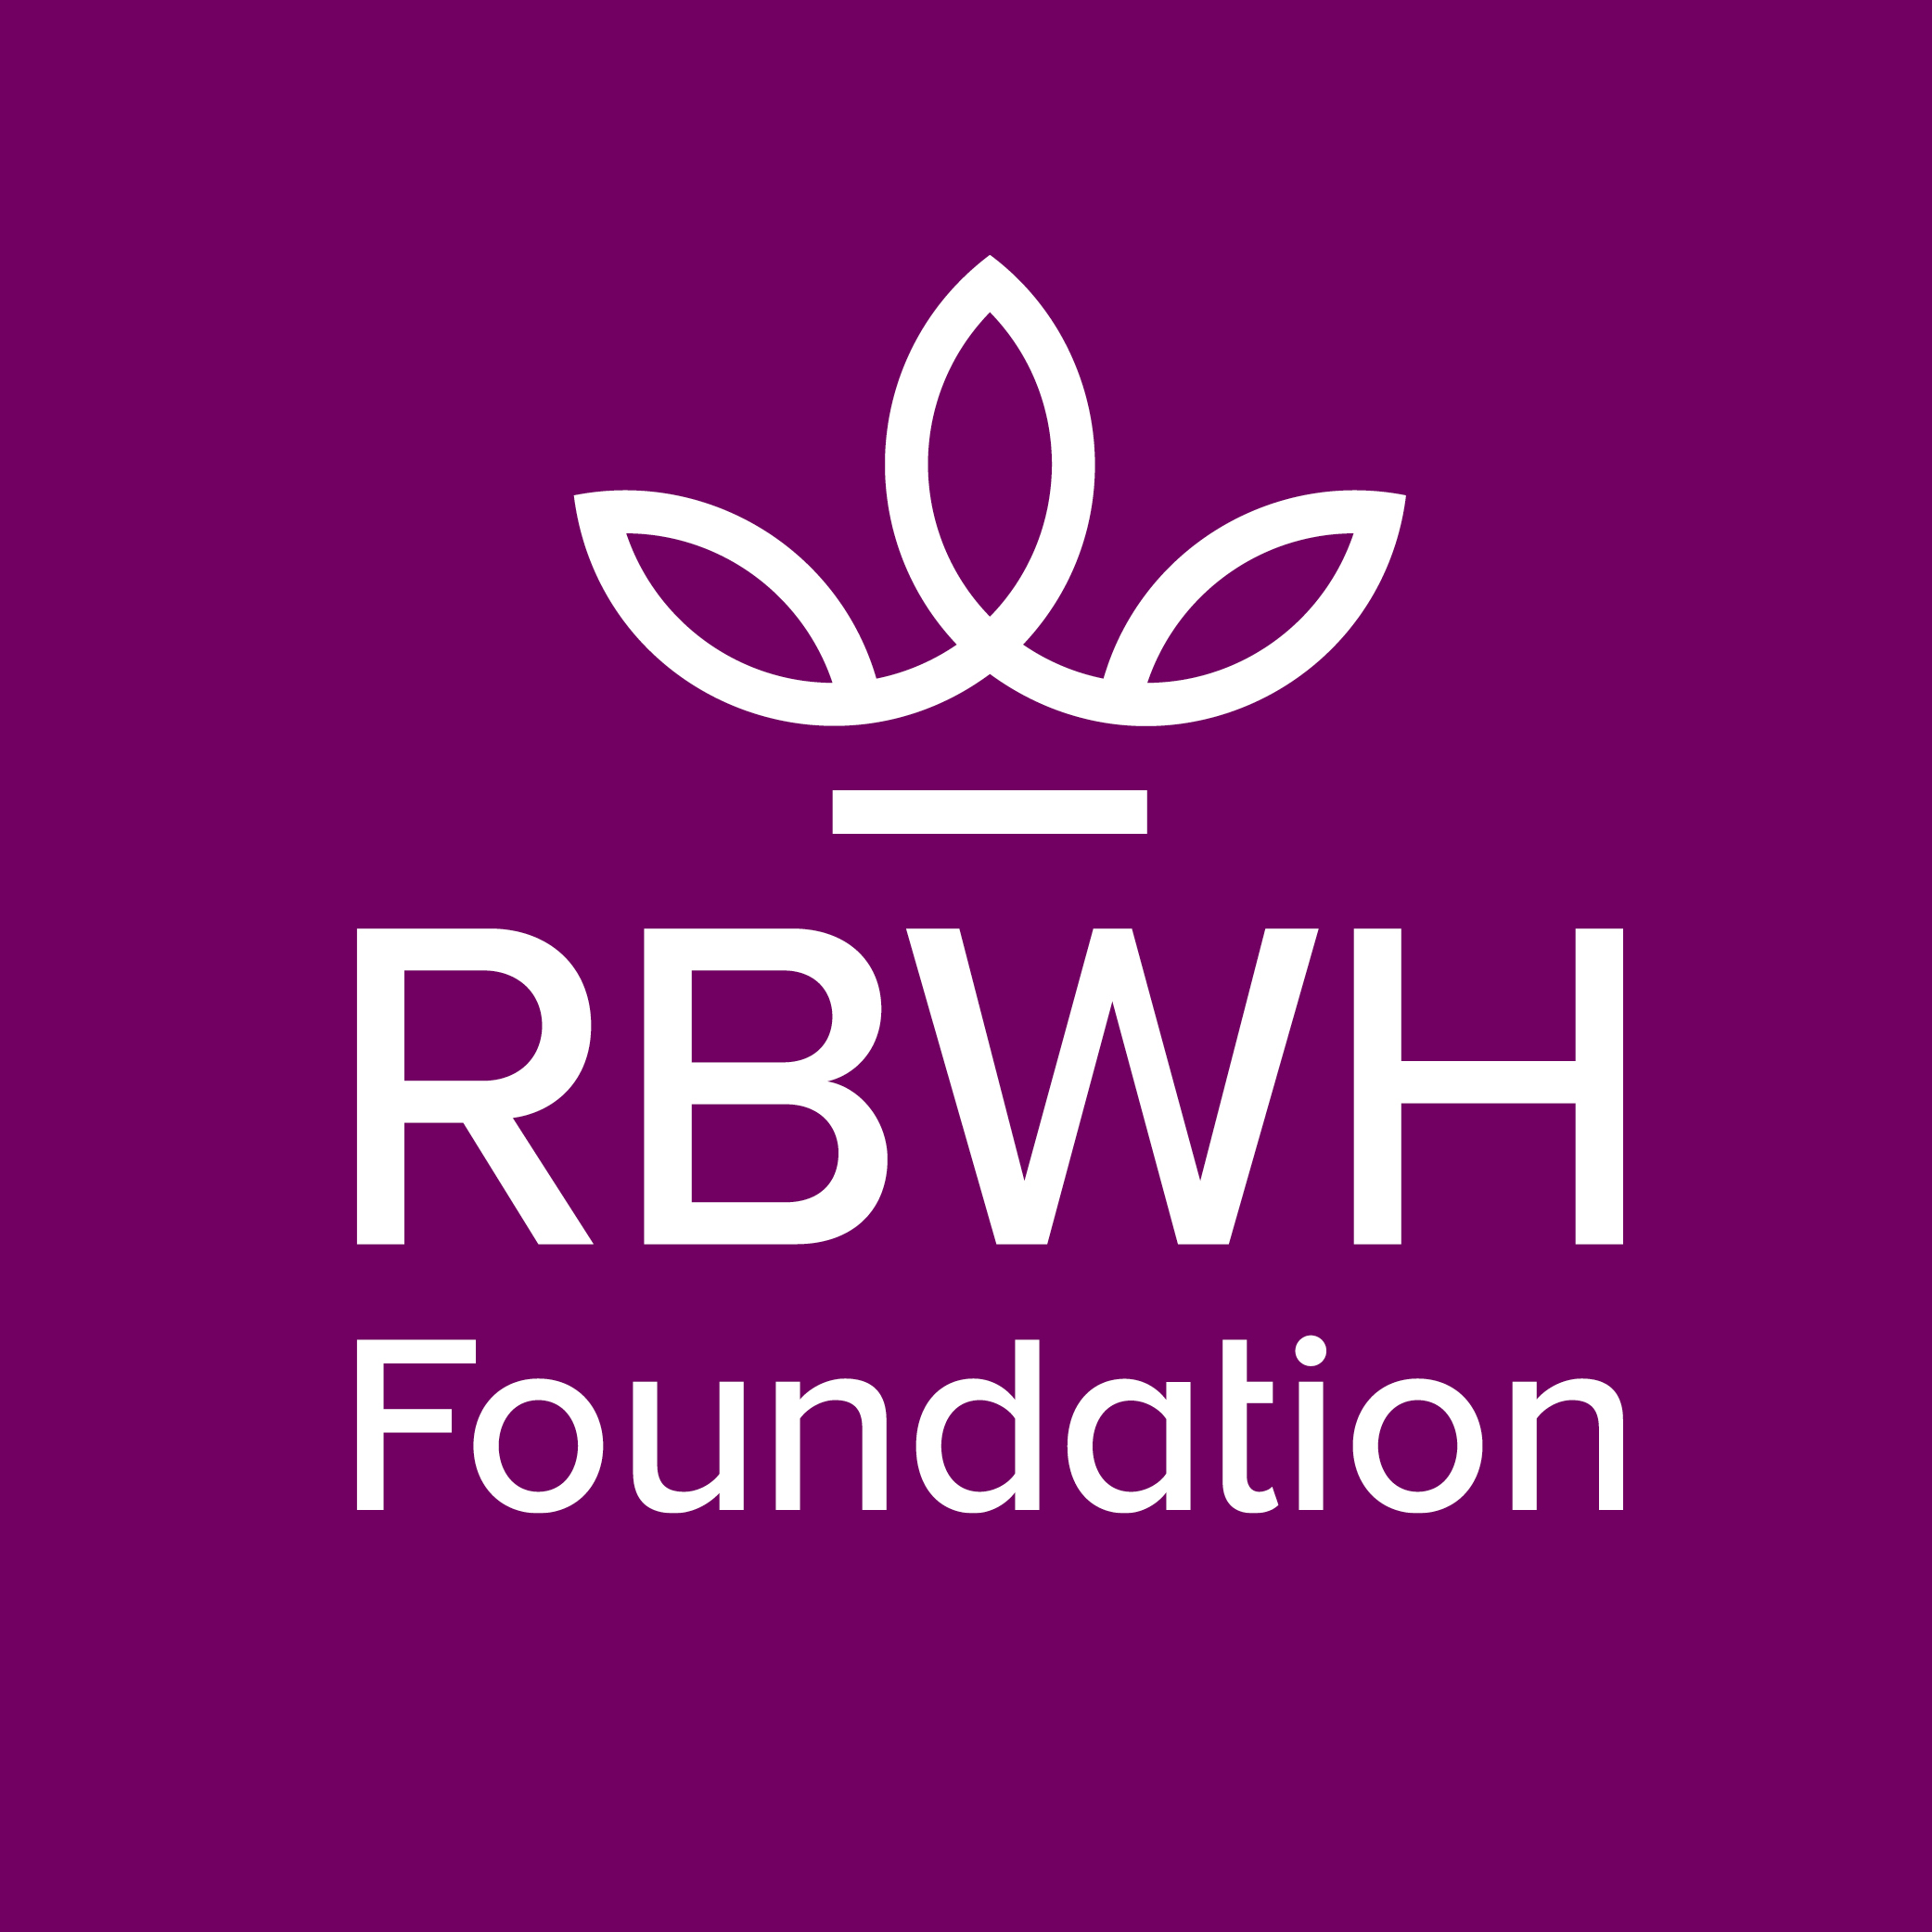 RBWH Foundation